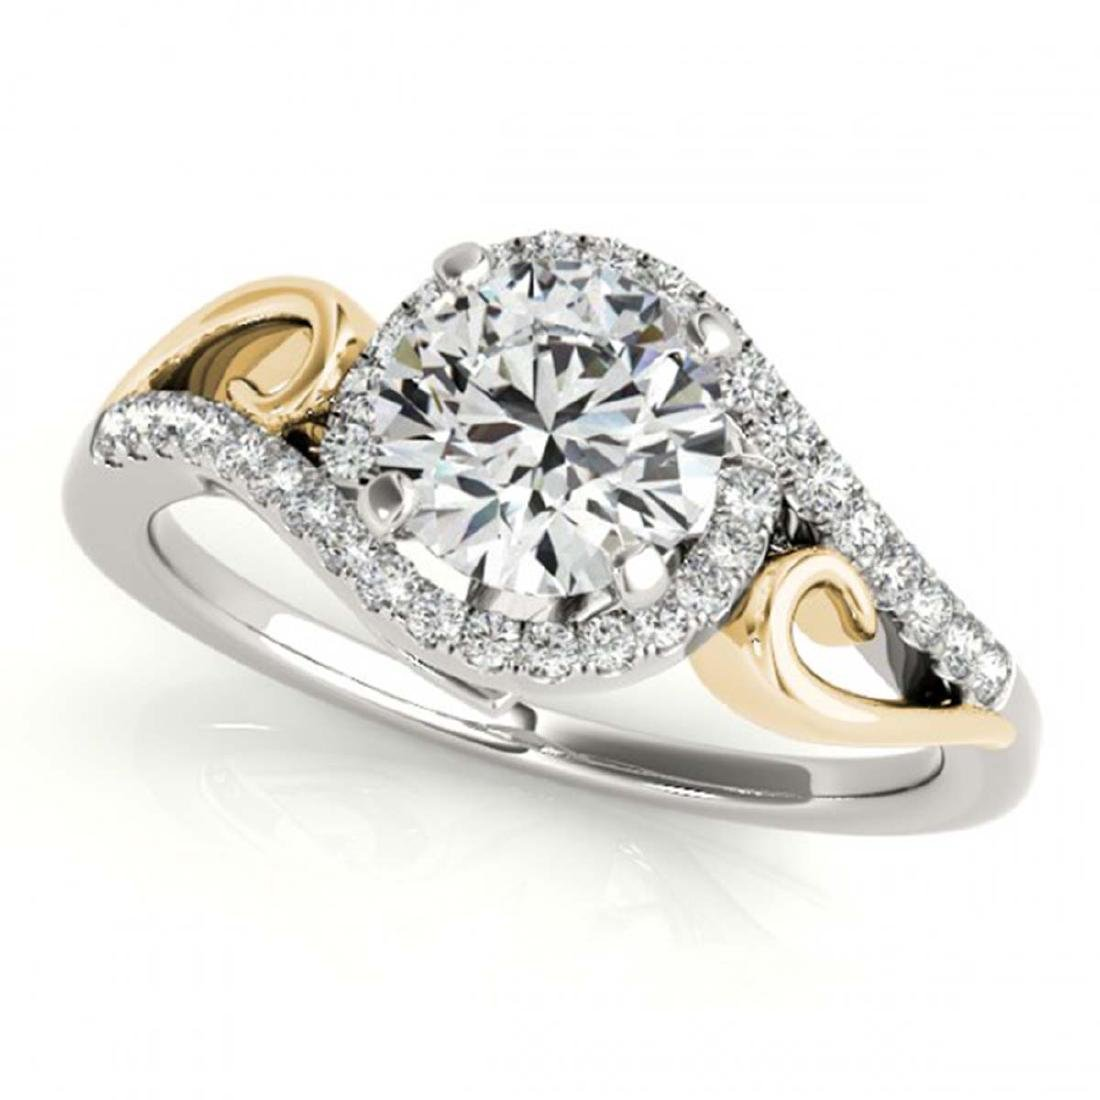 1.25 ctw VS/SI Diamond Solitaire Halo Ring 14K White &